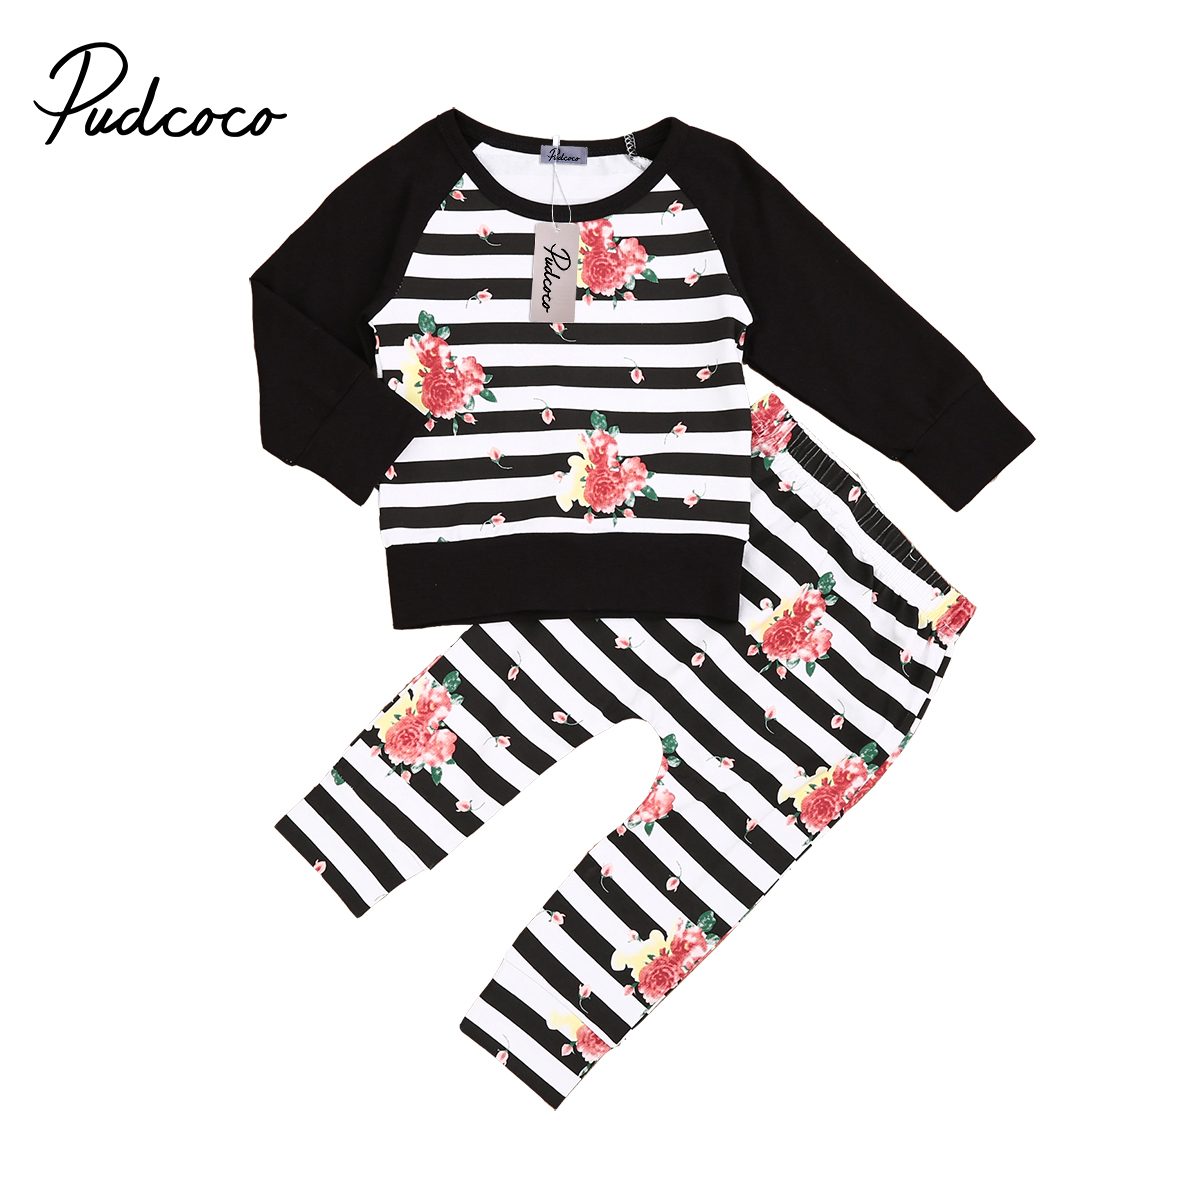 2018 Newborn Baby Girl Floral Clothes Baby Girl Striped T-shirt Tops+Long Pants 2pcs Outfits Set 3-18M